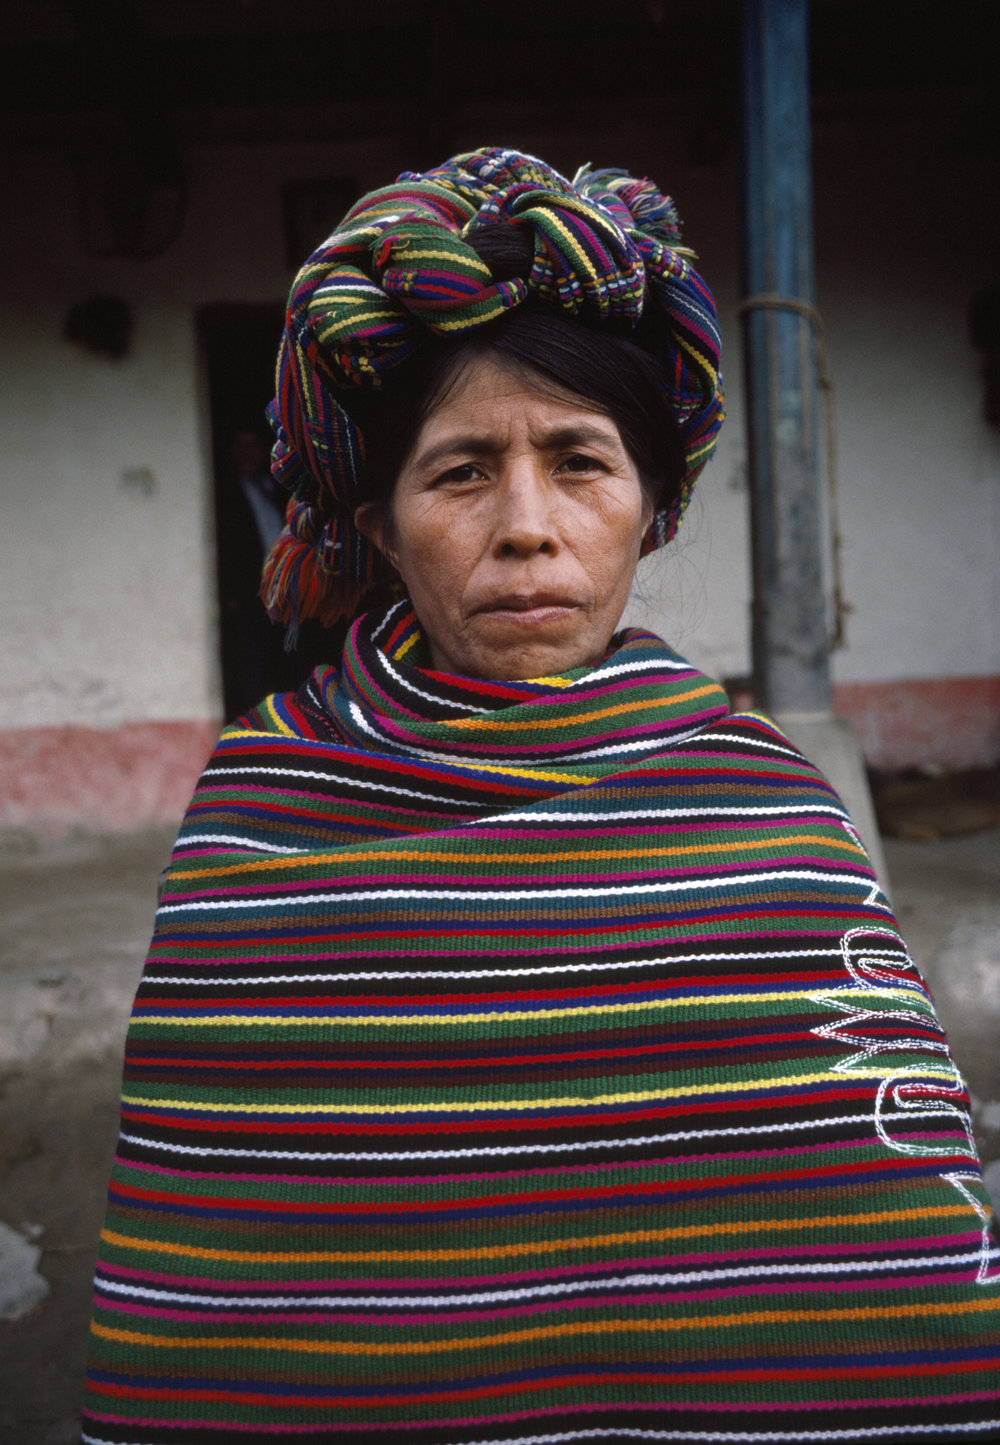 An Ixil Maya woman sits for a photograph inside the Pensíon Ardavin in Nebaj, Guatemala on January 1, 1984. Over 200,000 civilians were killed in the 36-year civil war with over 40,000 civilians missing, the majority of those were Ixil Mayan victims.